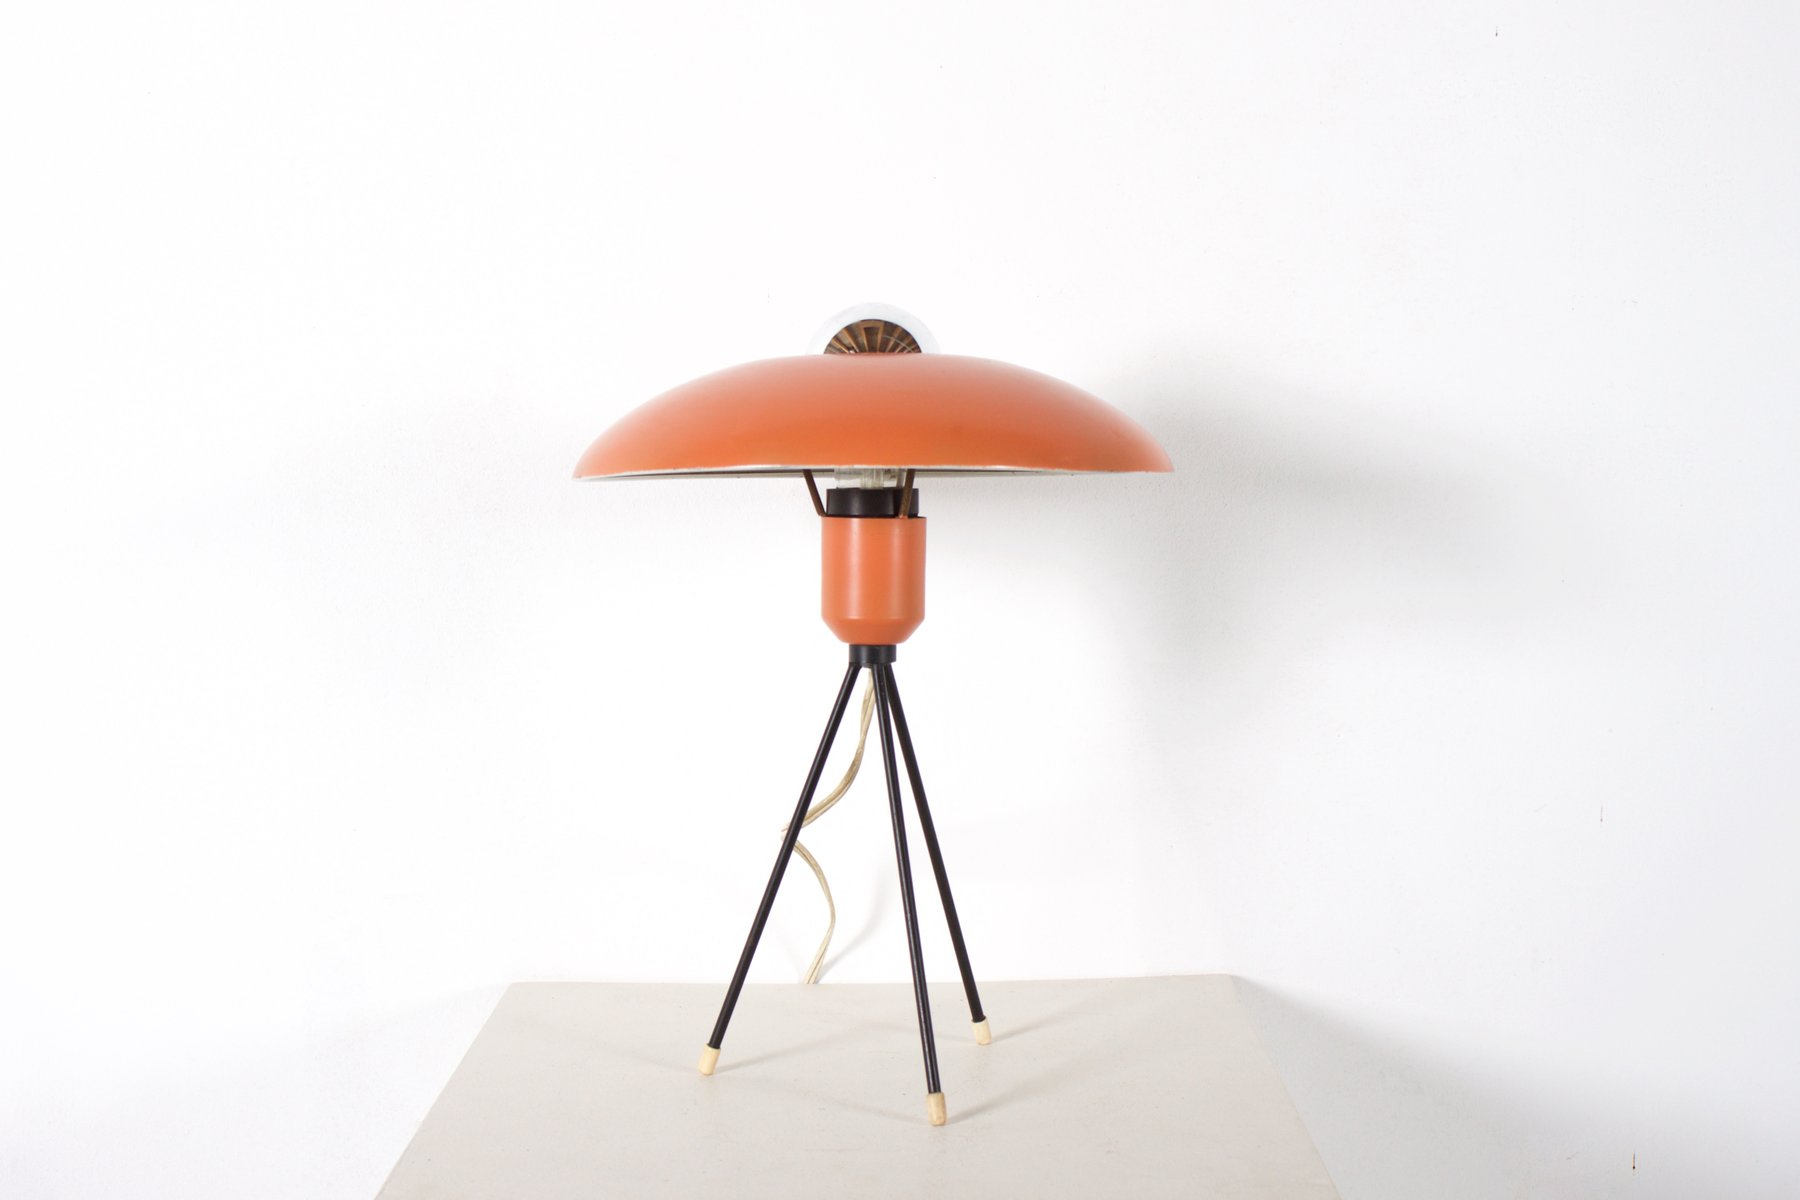 Dutch Tripod Table Lamp By Louis Kalff For Philips, 1950s For Sale At Pamono